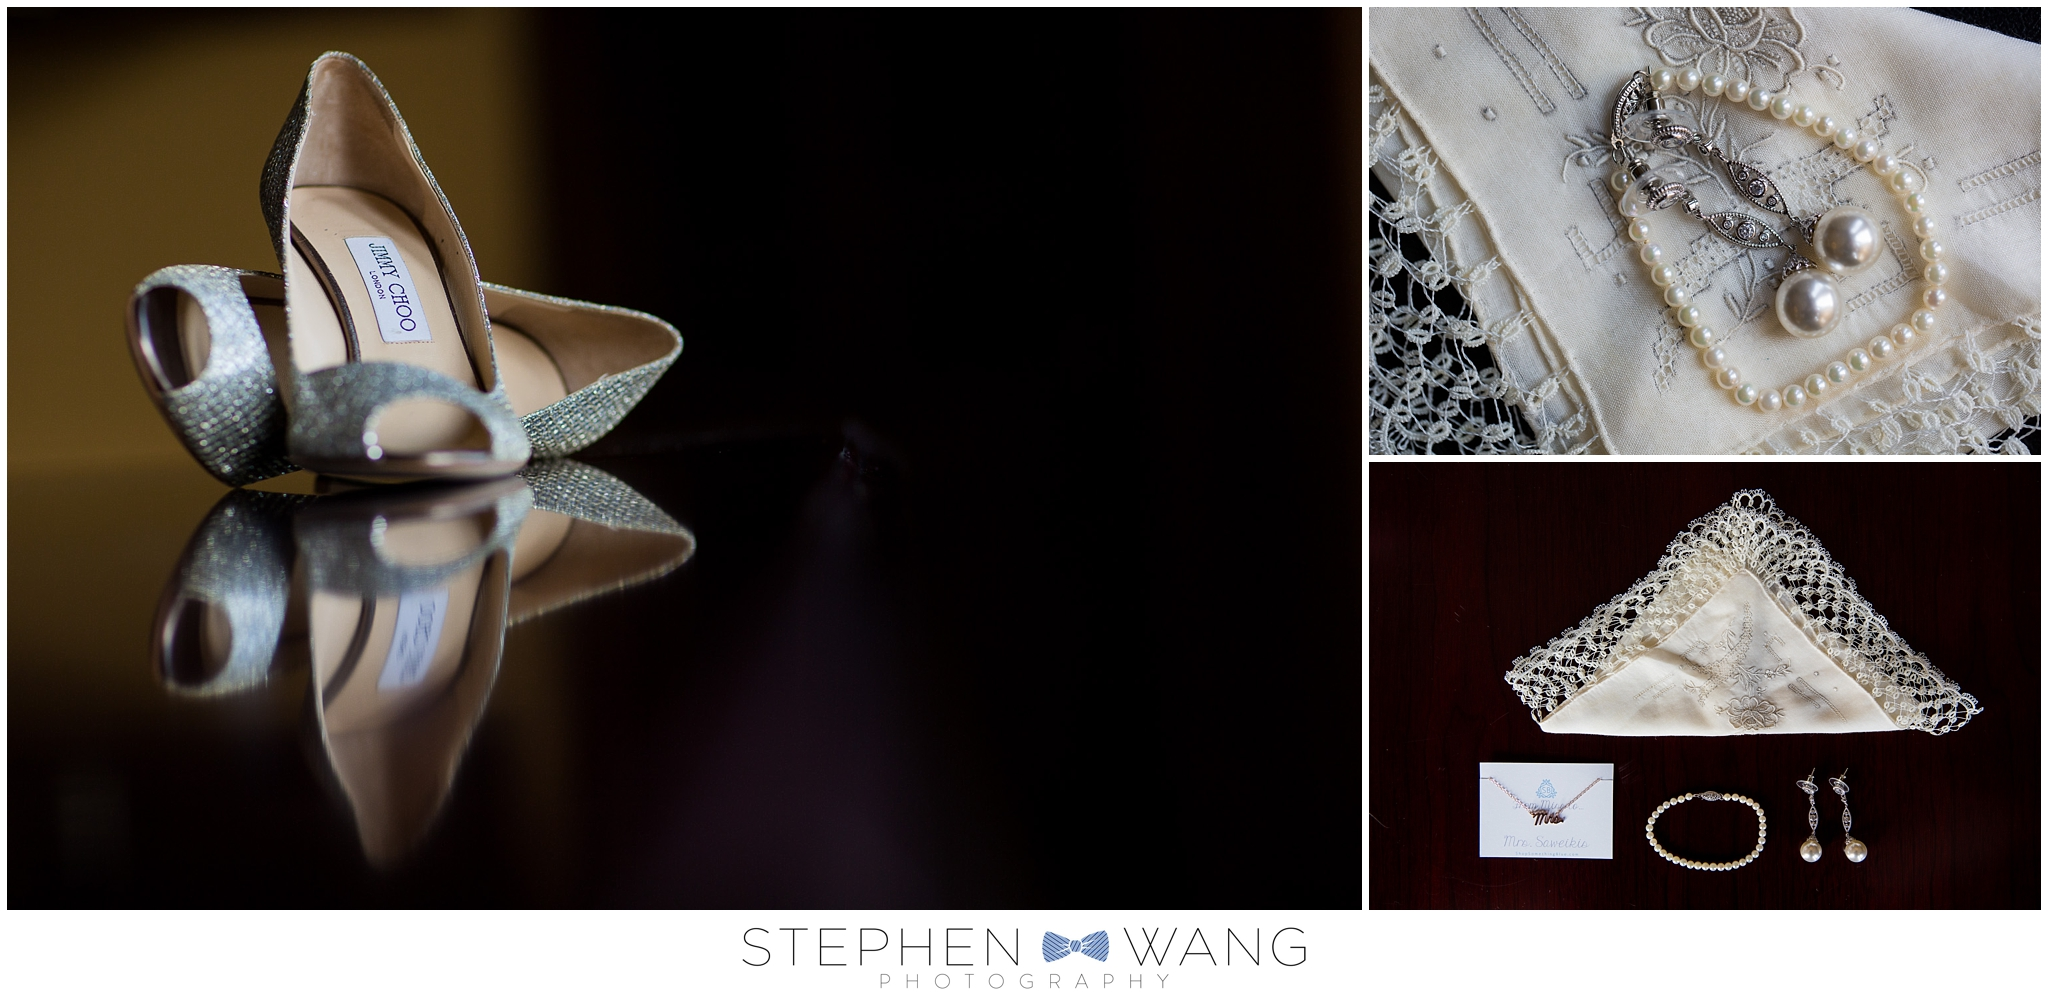 Stephen Wang Photography wedding photographer whitby castle wedding rye ny connecticut photographer philadlephia photographer pennsylvania wedding photographer bride and groom00001.jpg